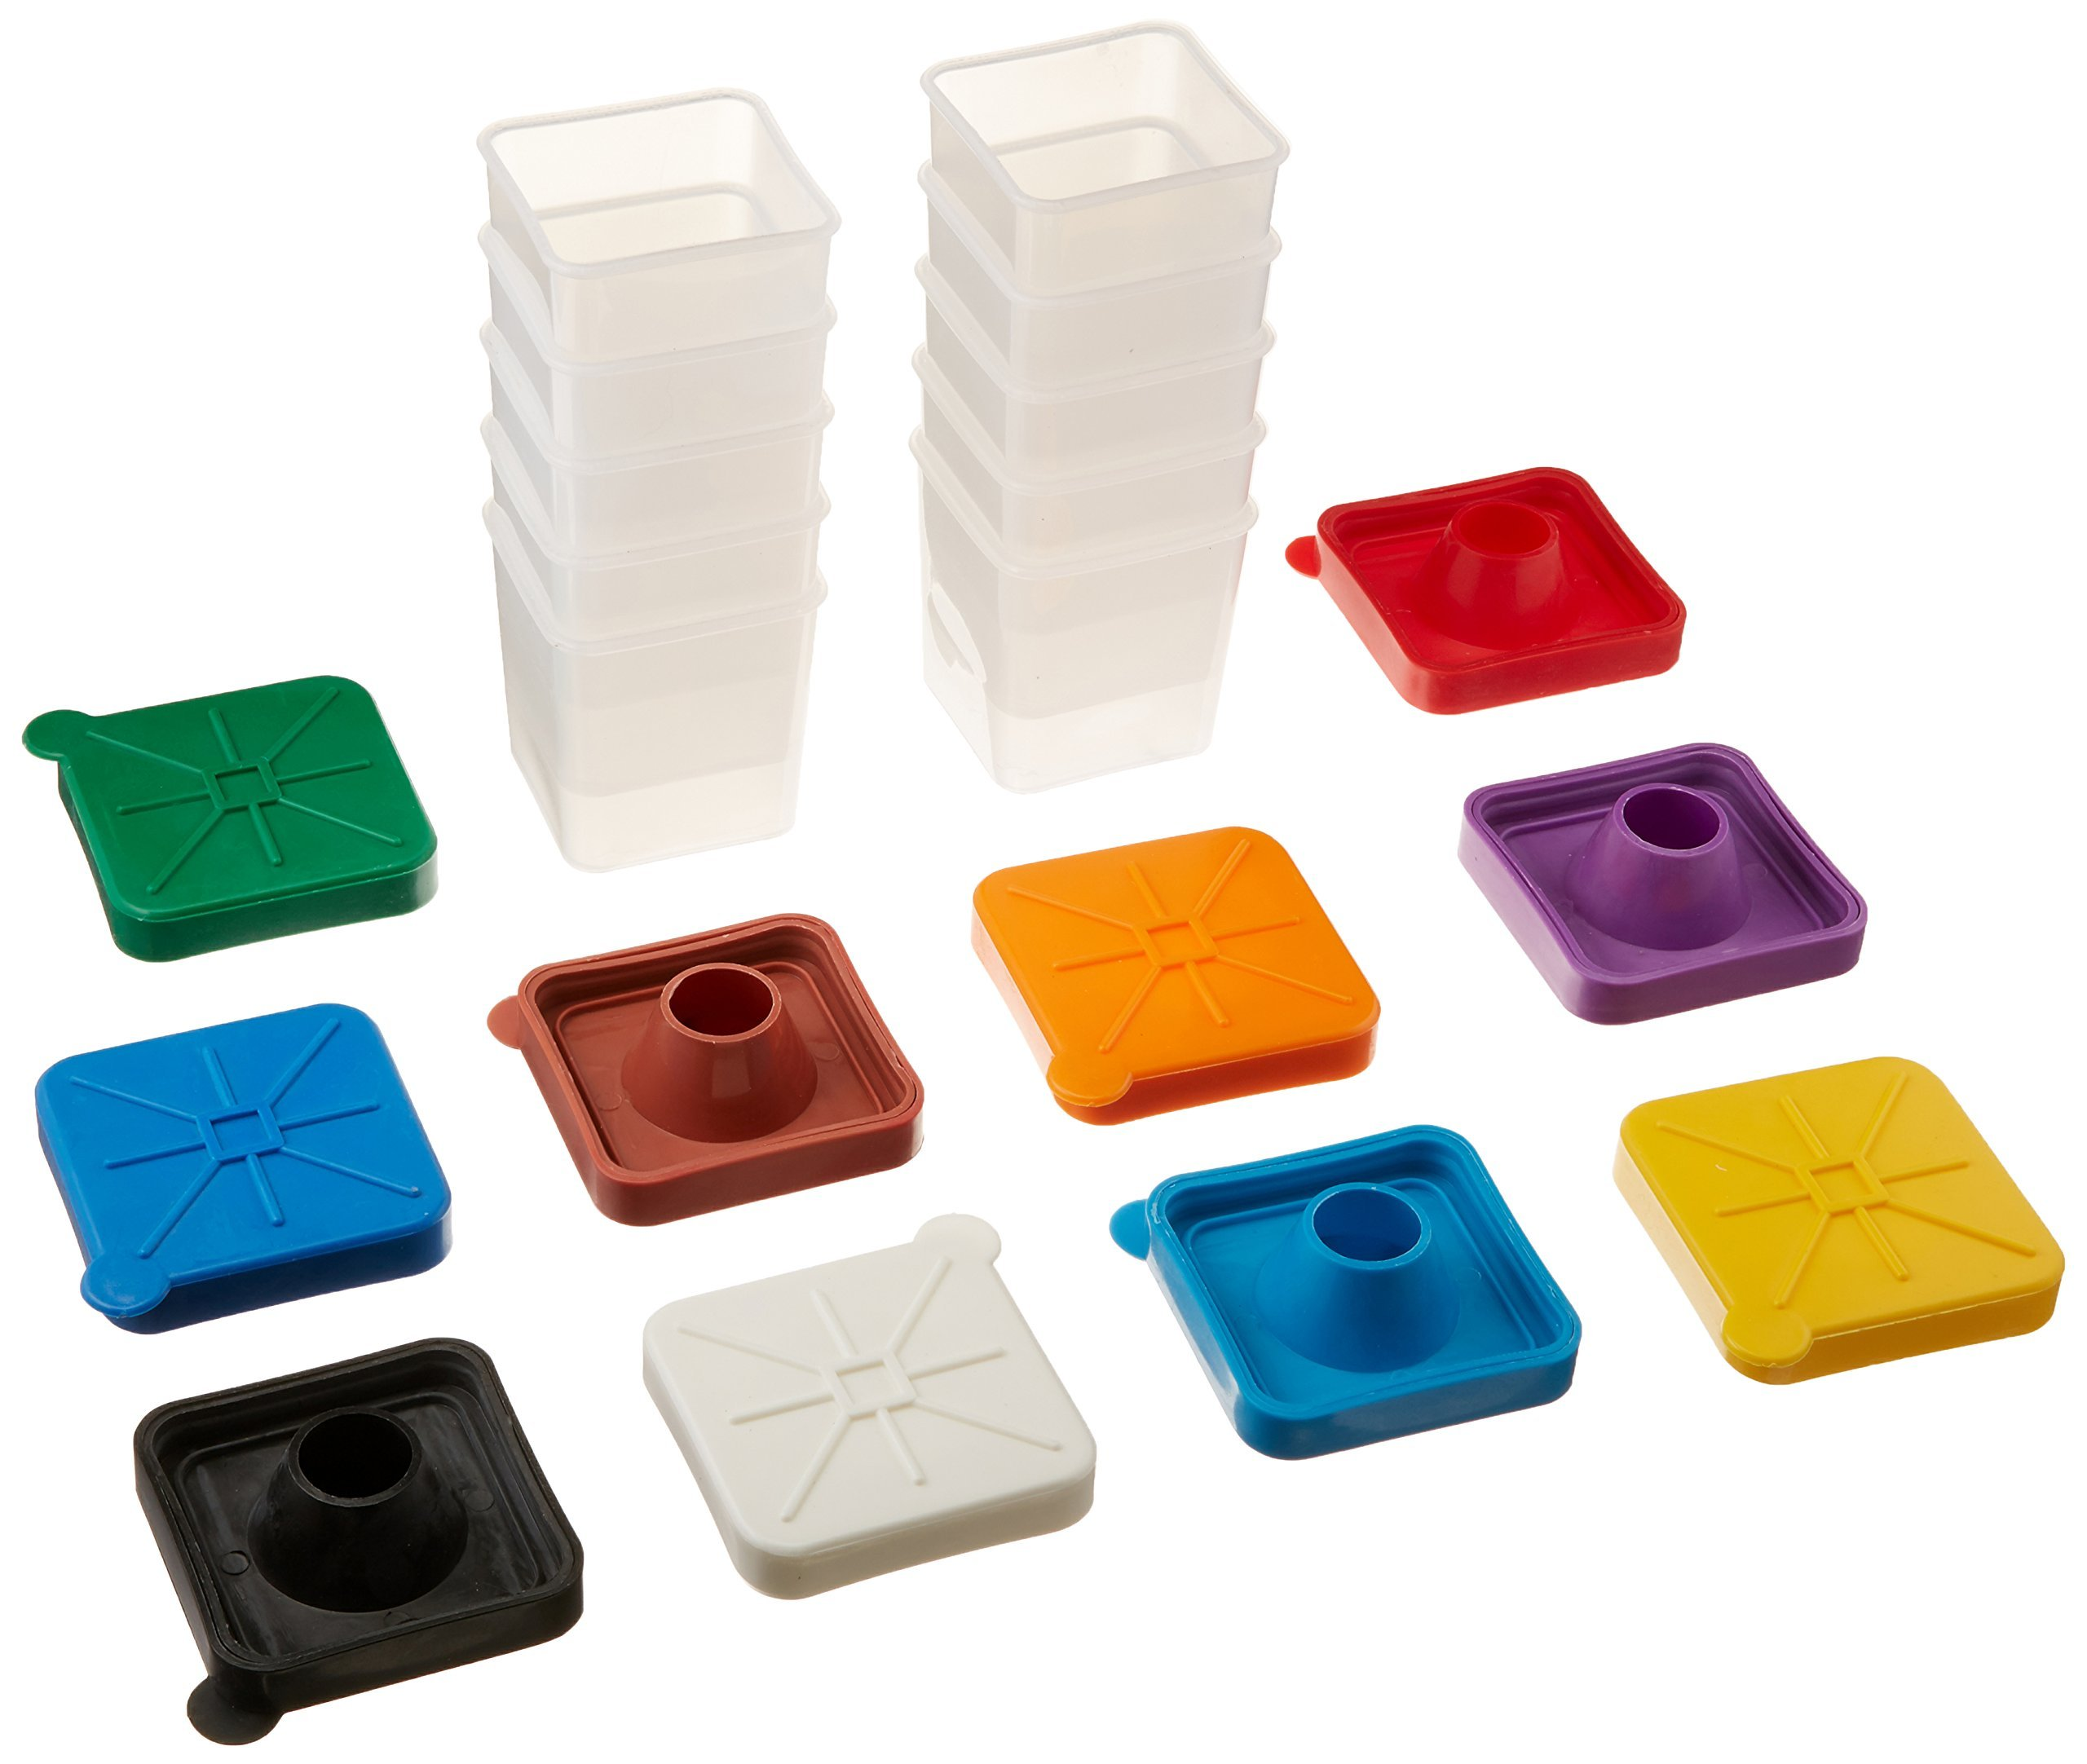 School Smart Plastic Square Colored Lid Paint Pots - 3 1/2 inches - Pack of 10 - Assorted Colors